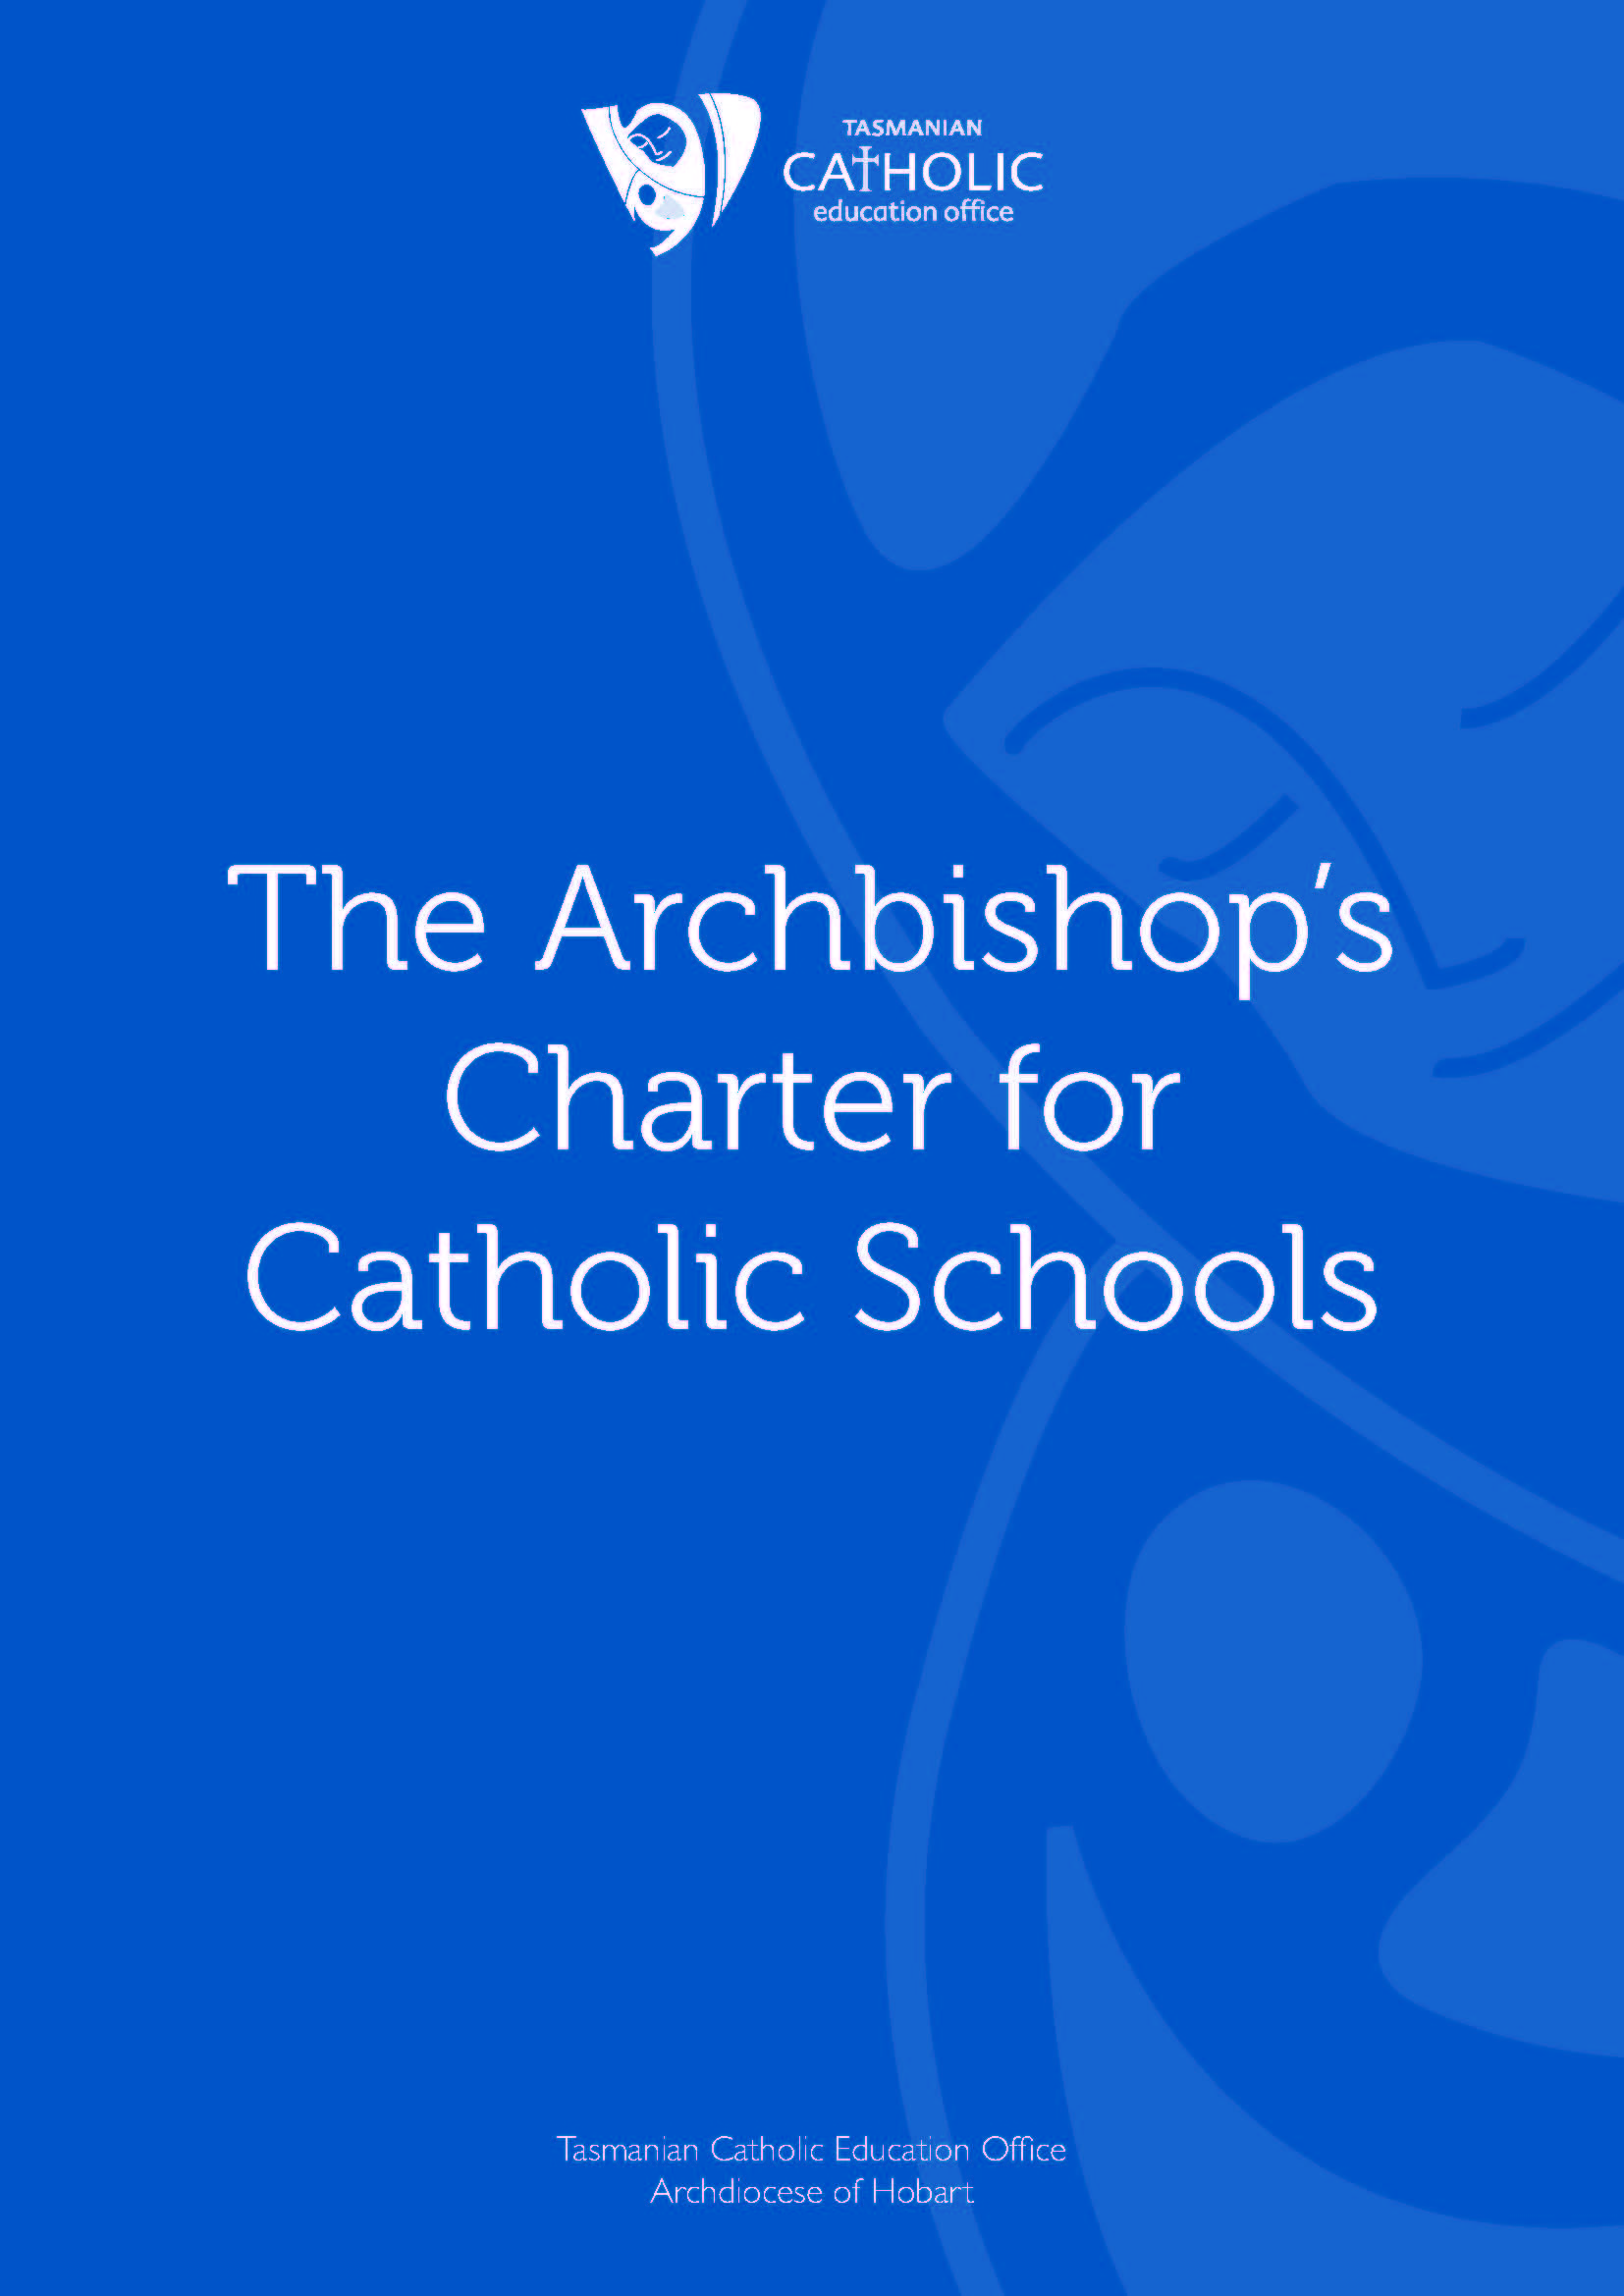 The Archbishop's Charter for Catholic Schools